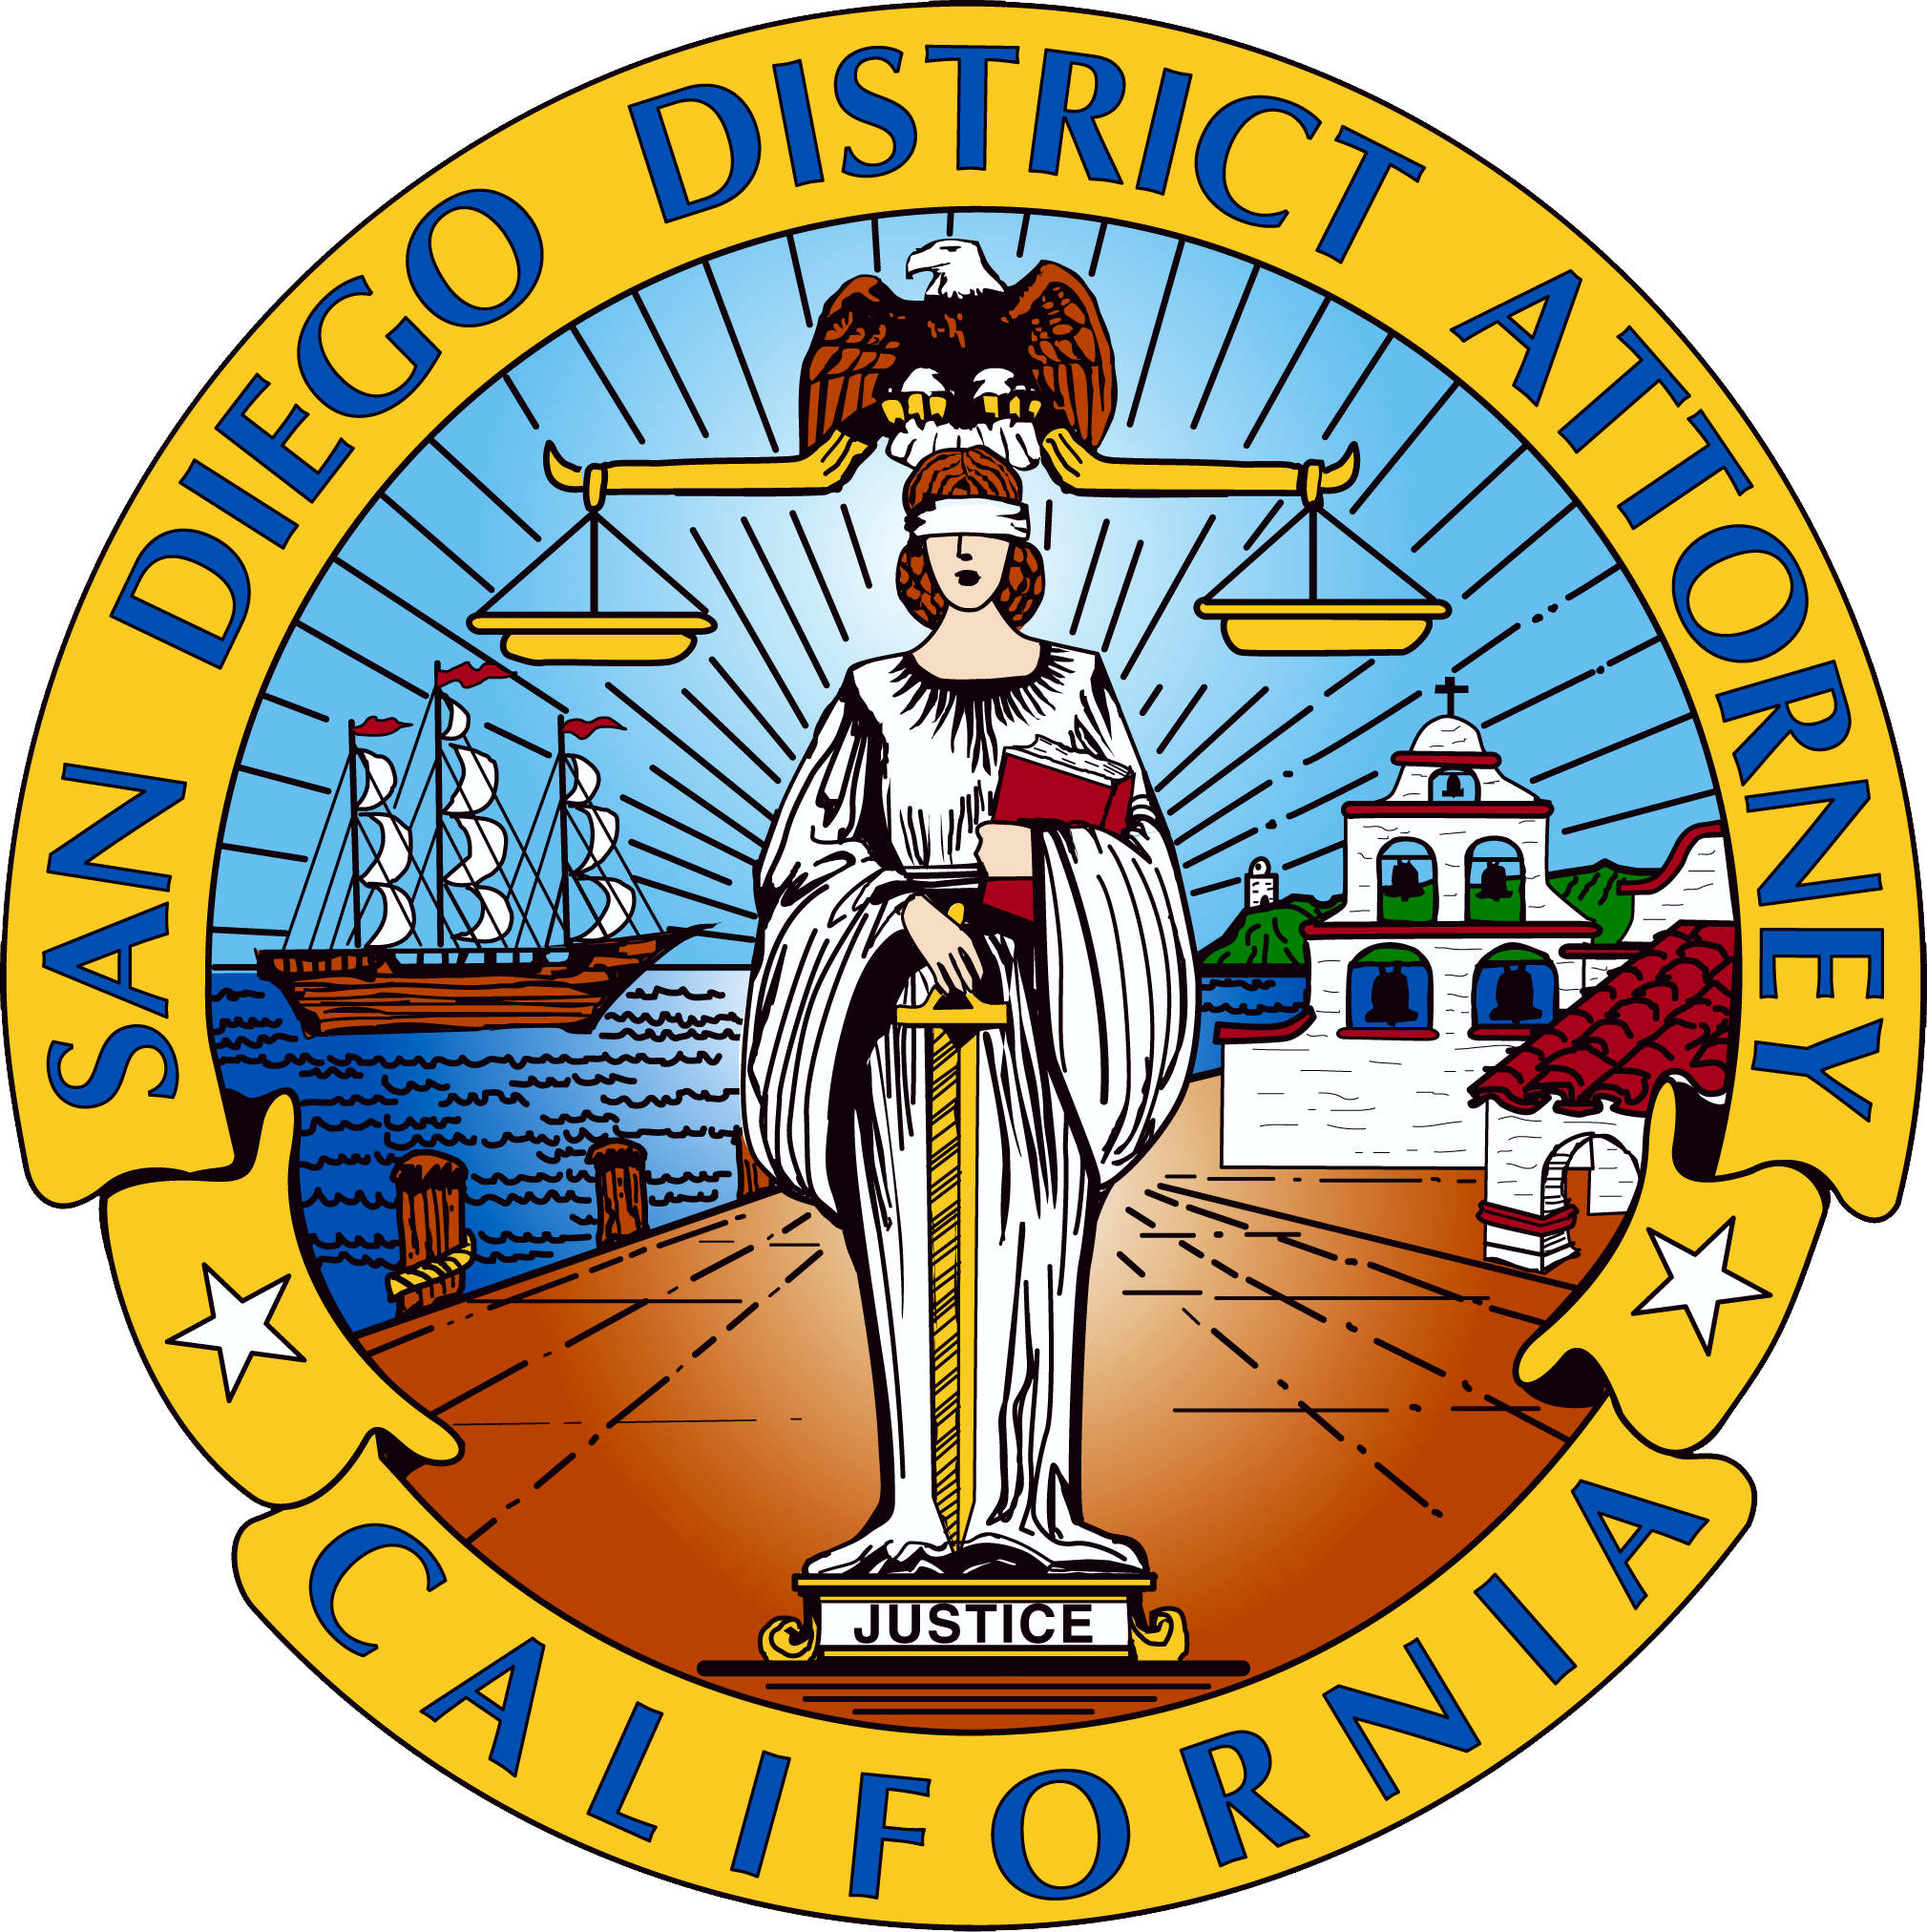 San Diego County District Attorney - Wikipedia